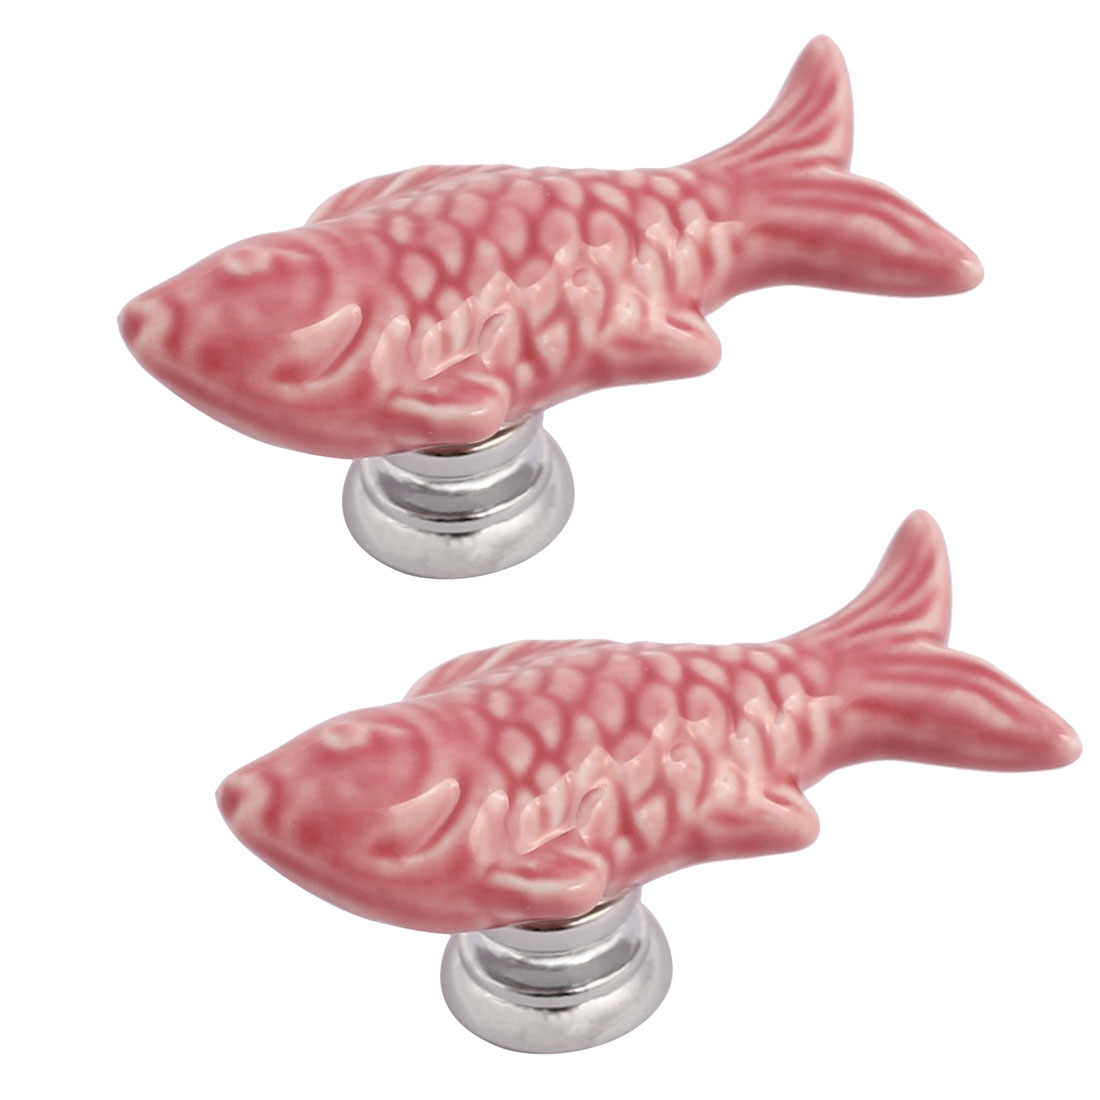 Cabinet Wardrobe Drawer Door Pull Fish Design Ceramic Knobs Pink 2pcs